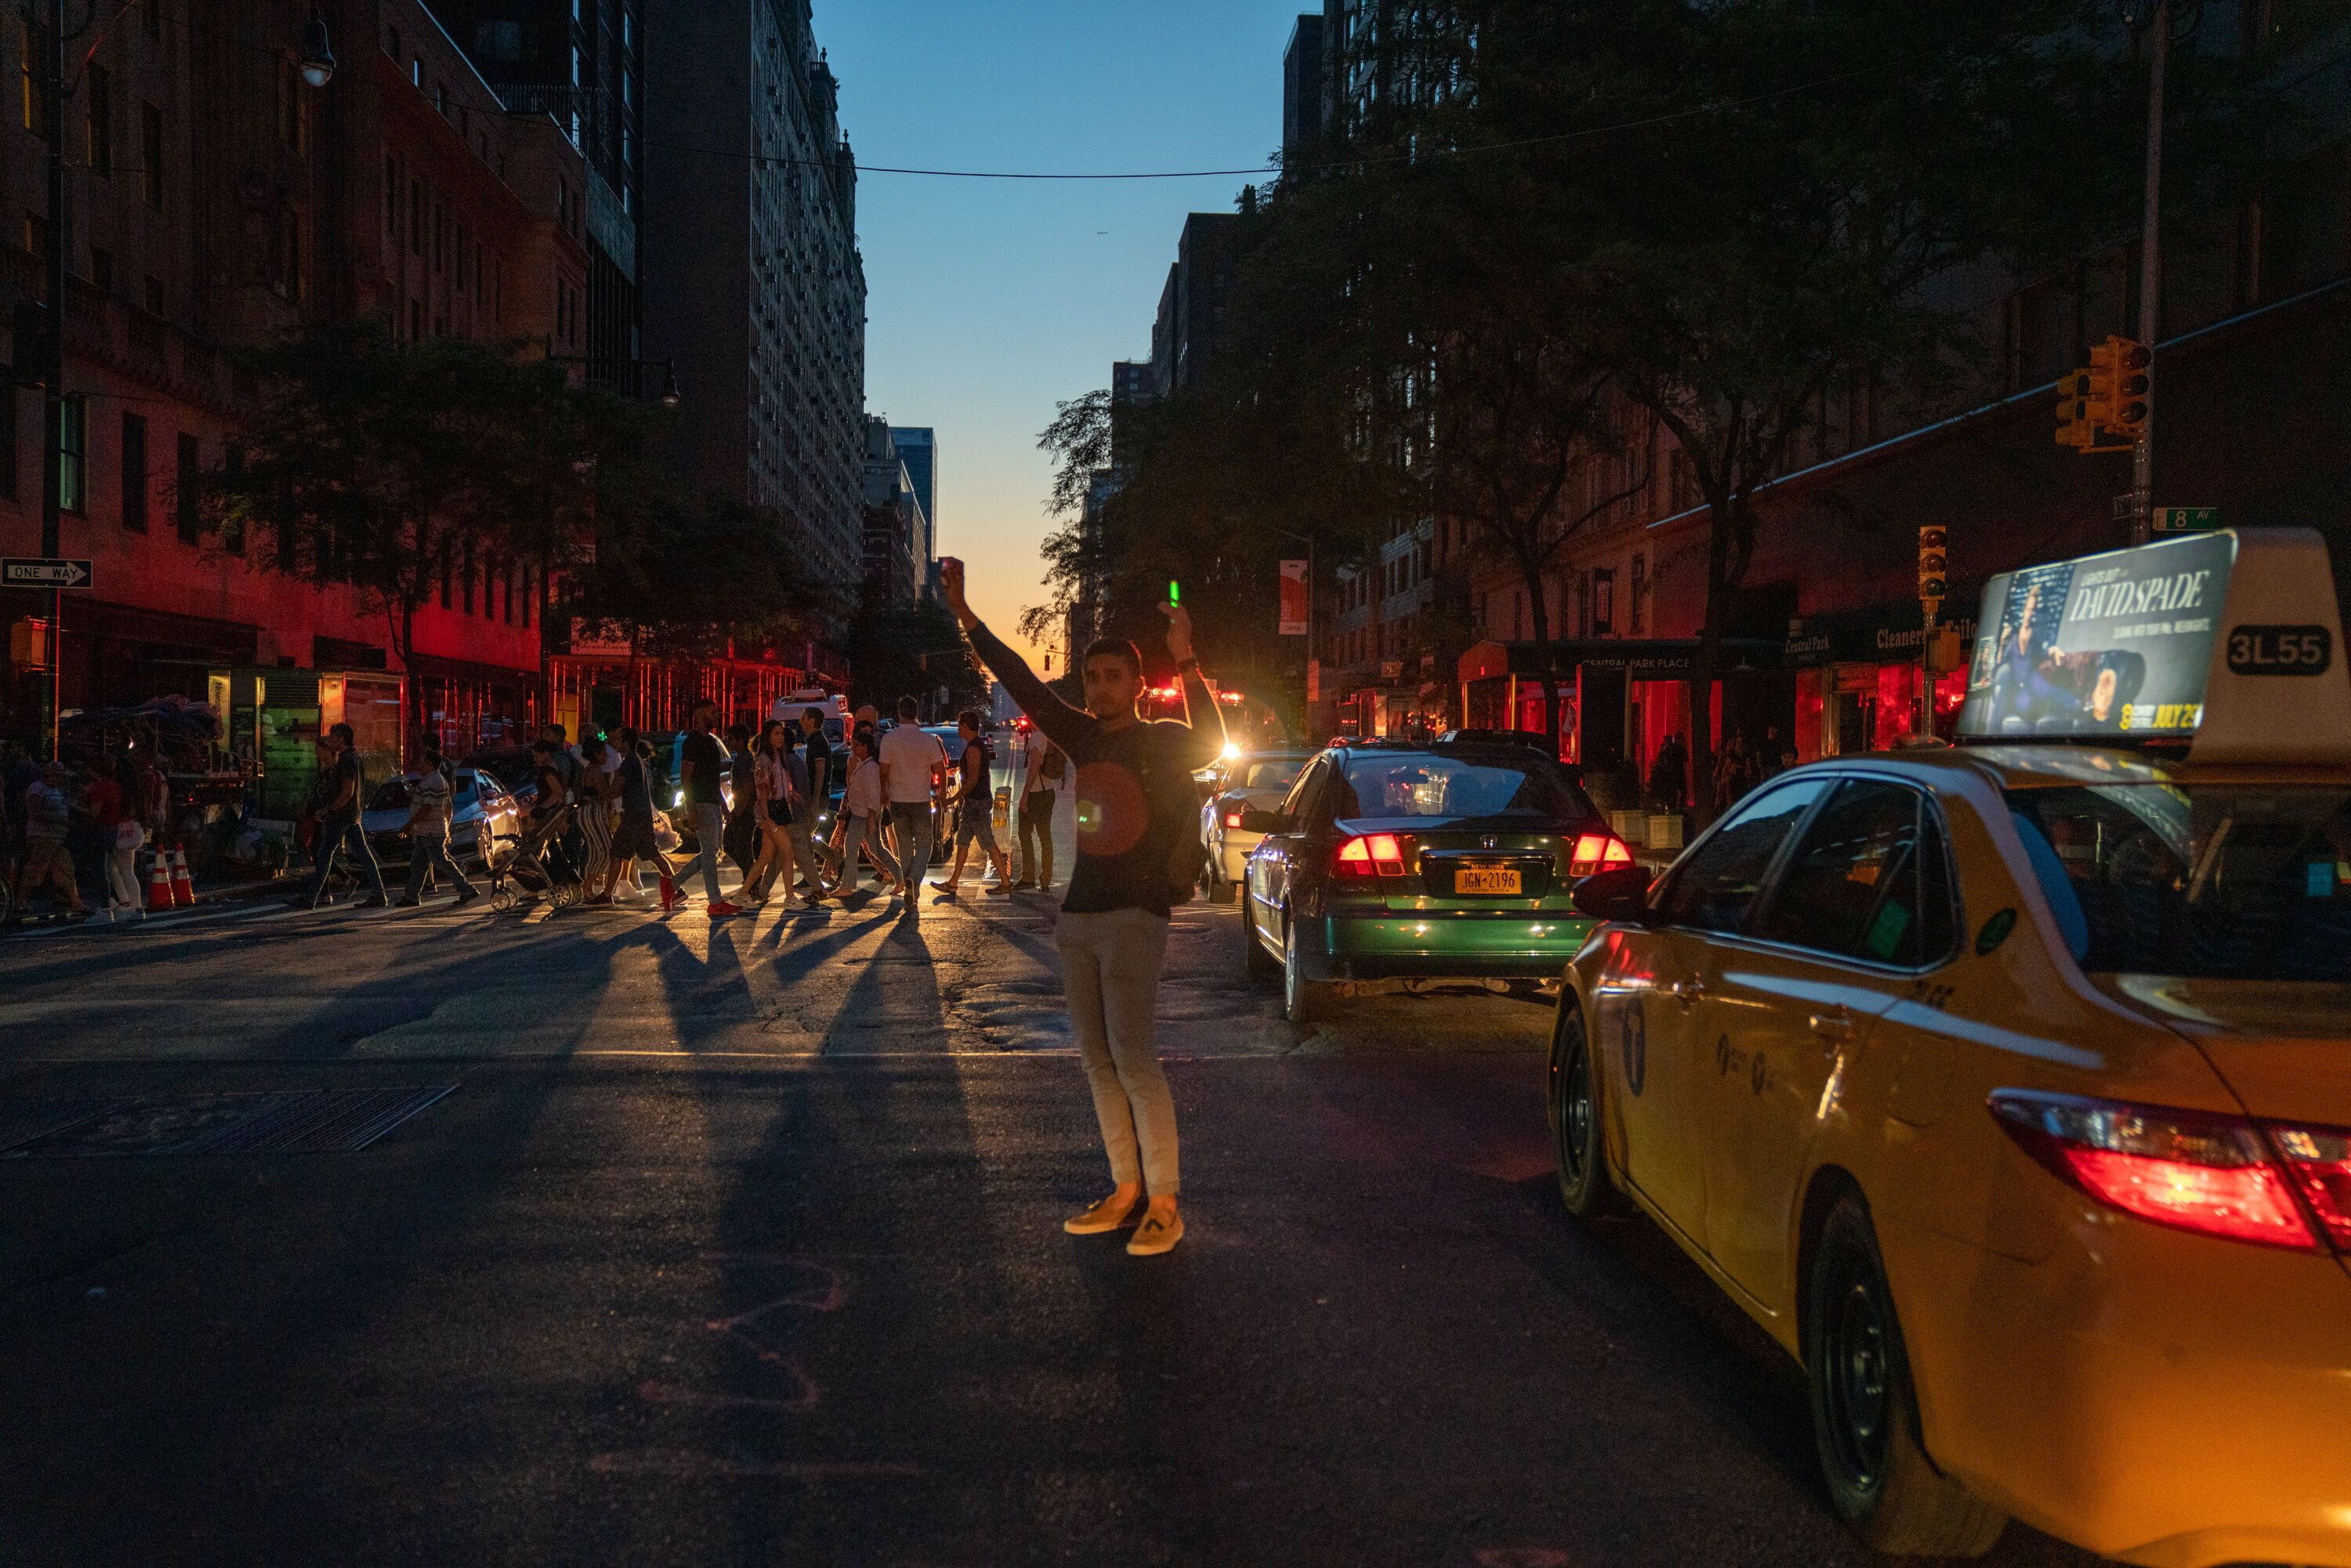 Major Power Outage In New York Blacks Out Large Swaths Of